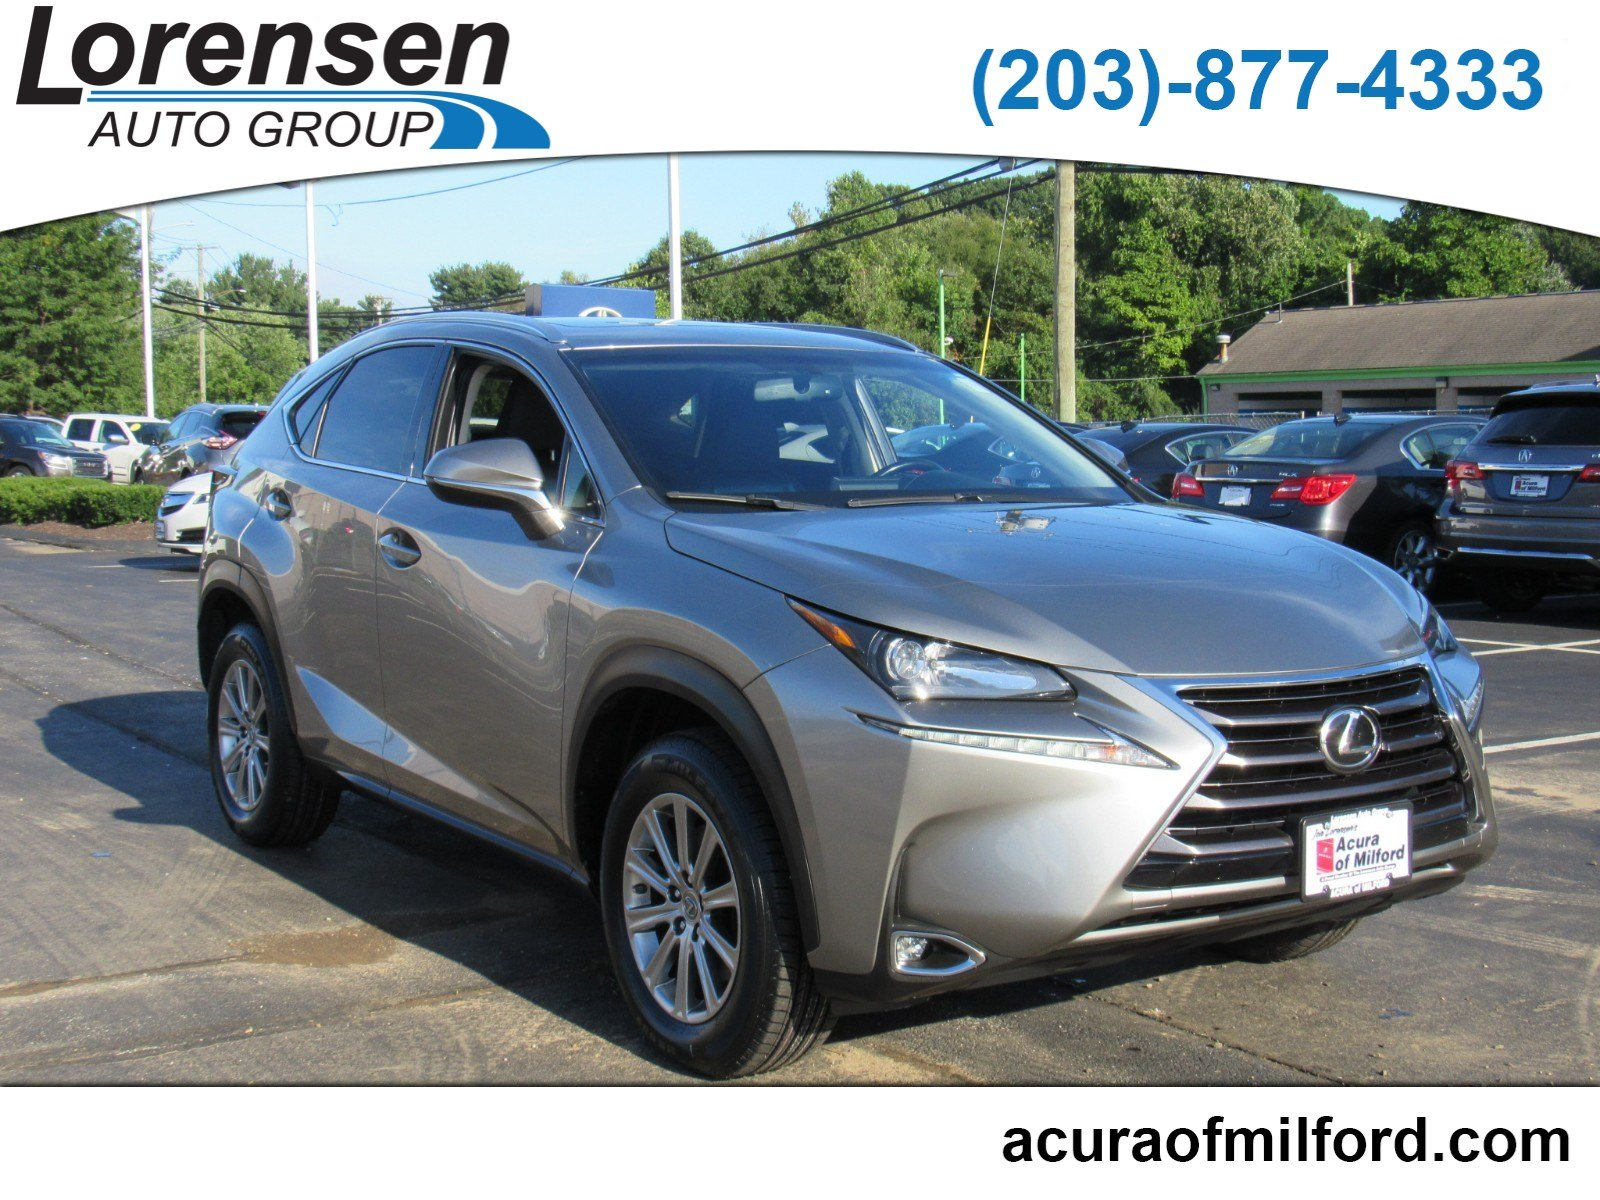 Pre Owned 2015 Lexus NX 200t AWD 4dr